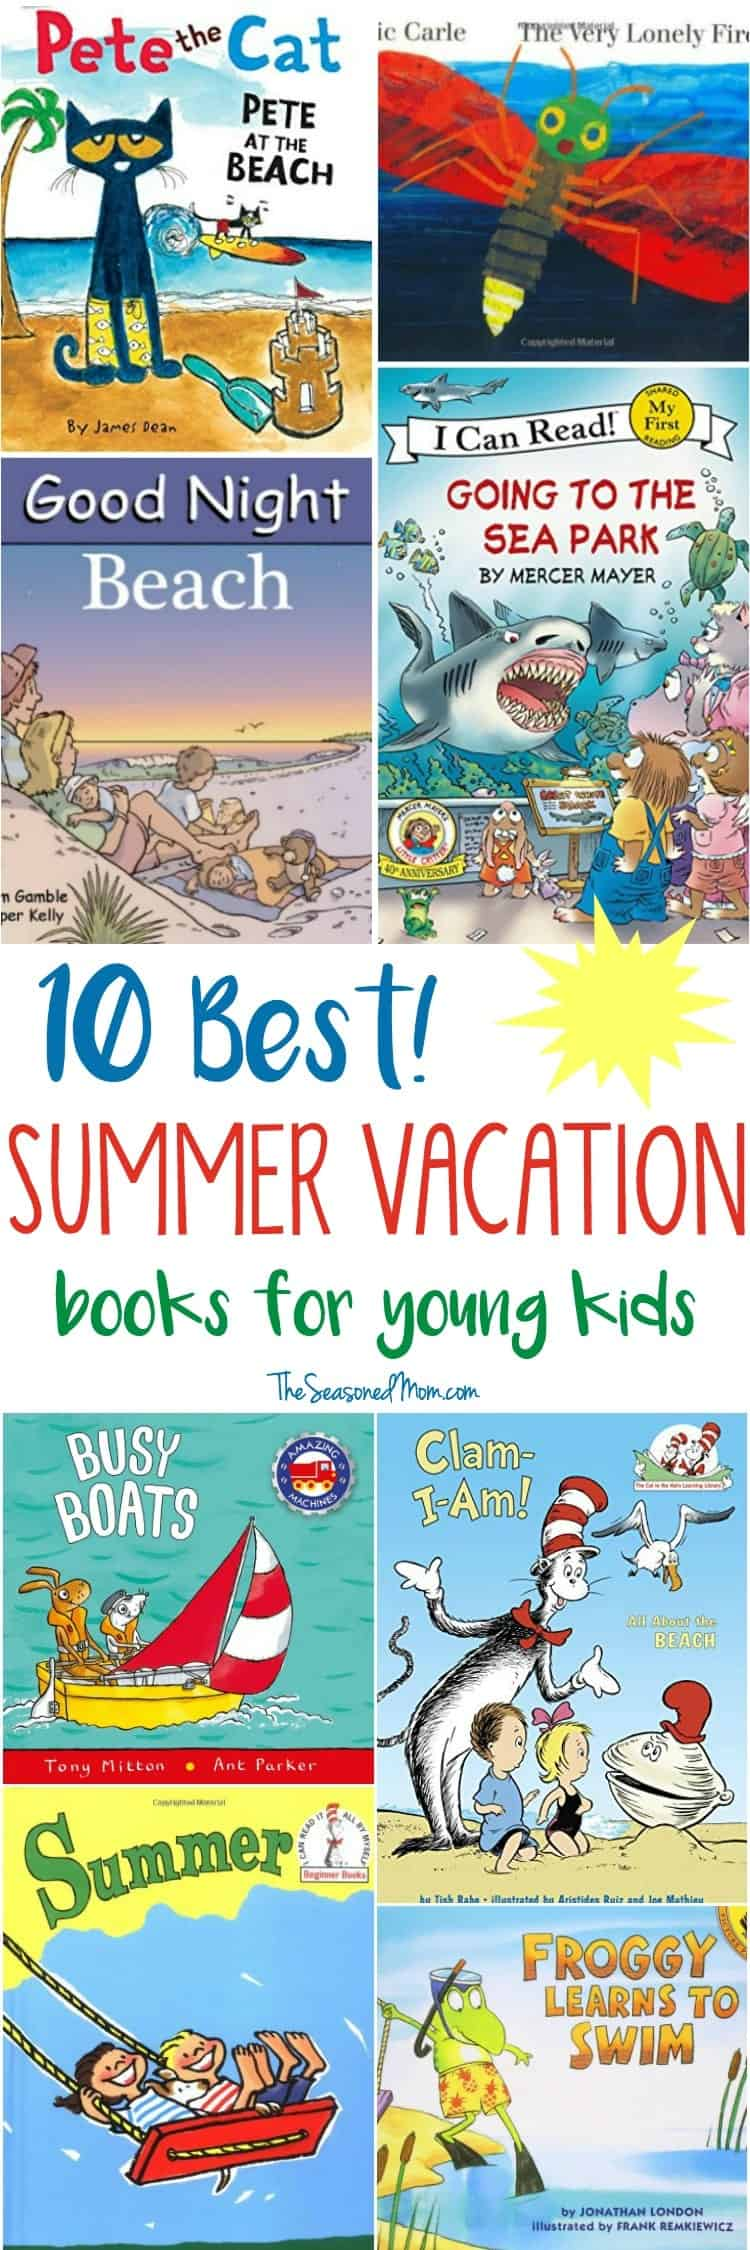 Summer Vacation Books for Young Kids